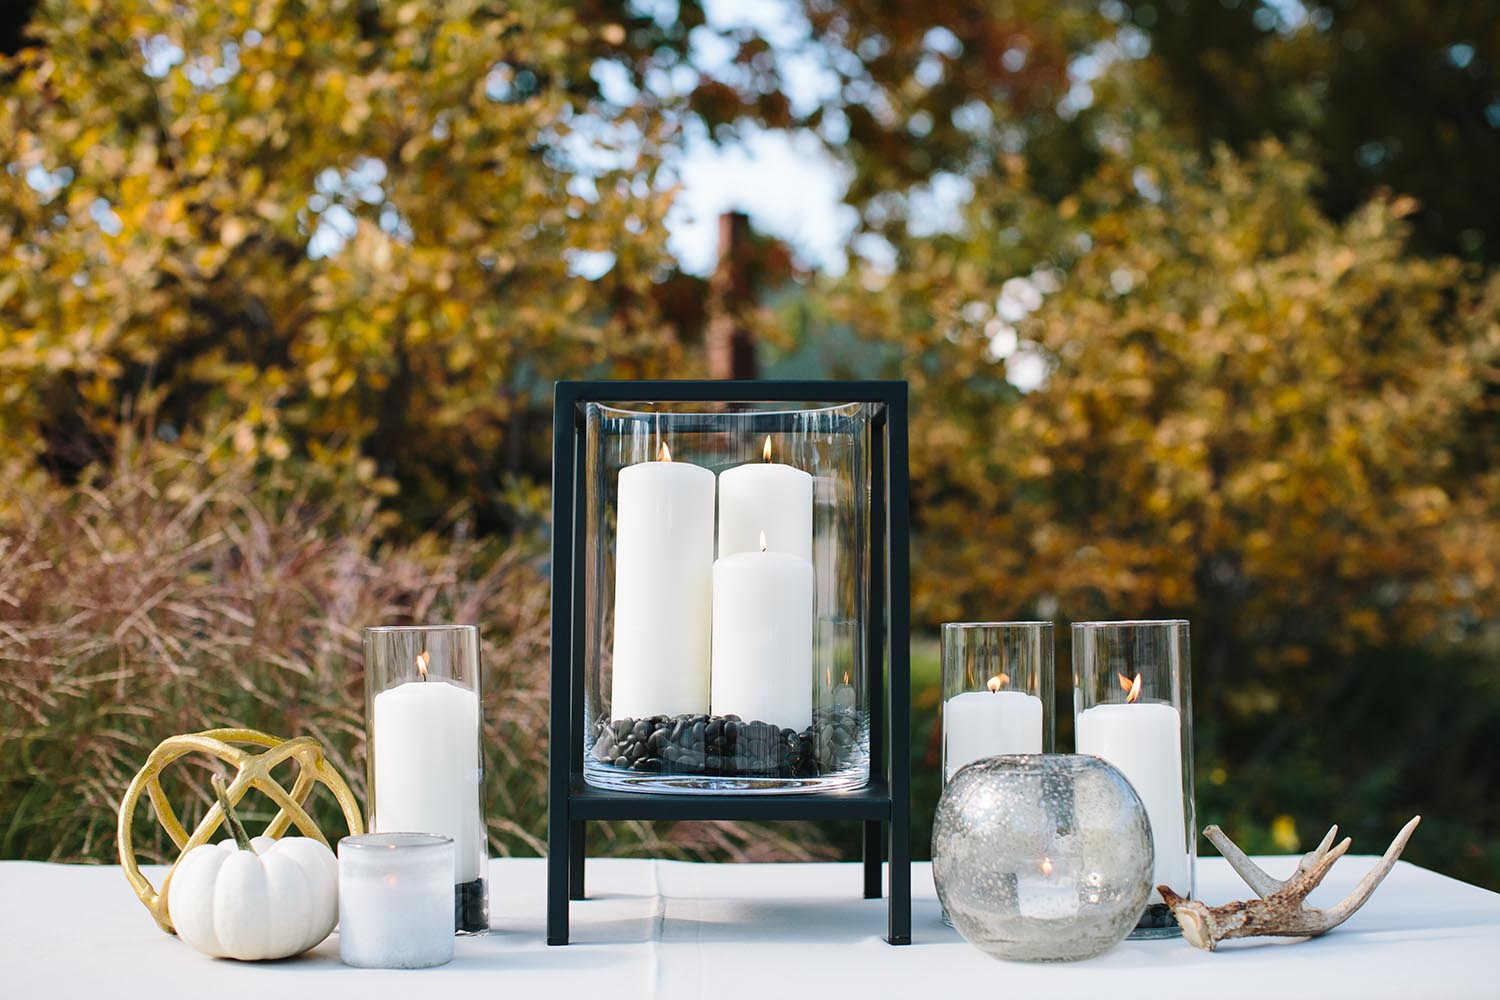 candles and modern rustic decor